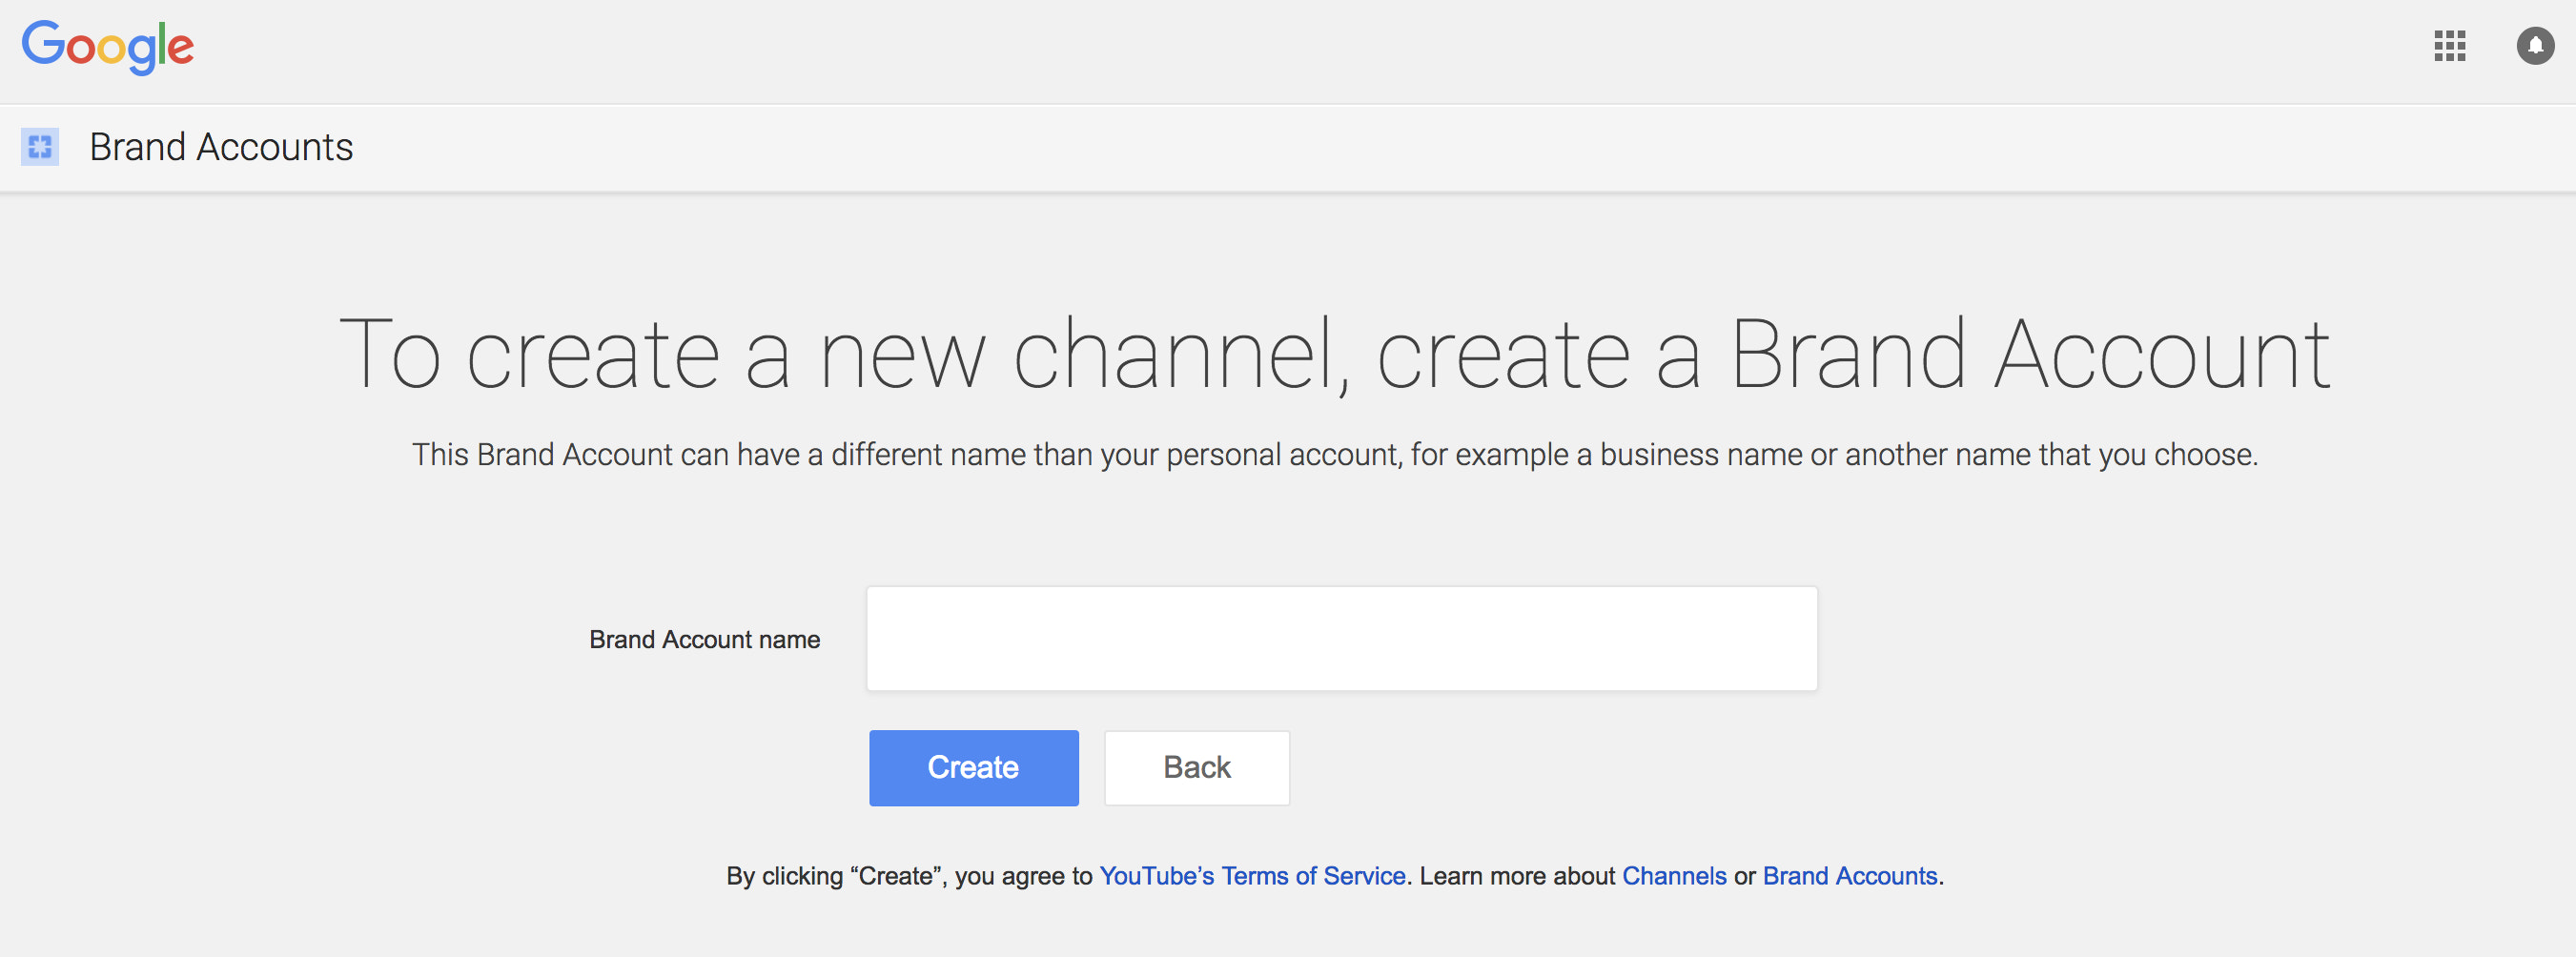 Youtube for business: creating a new brand account